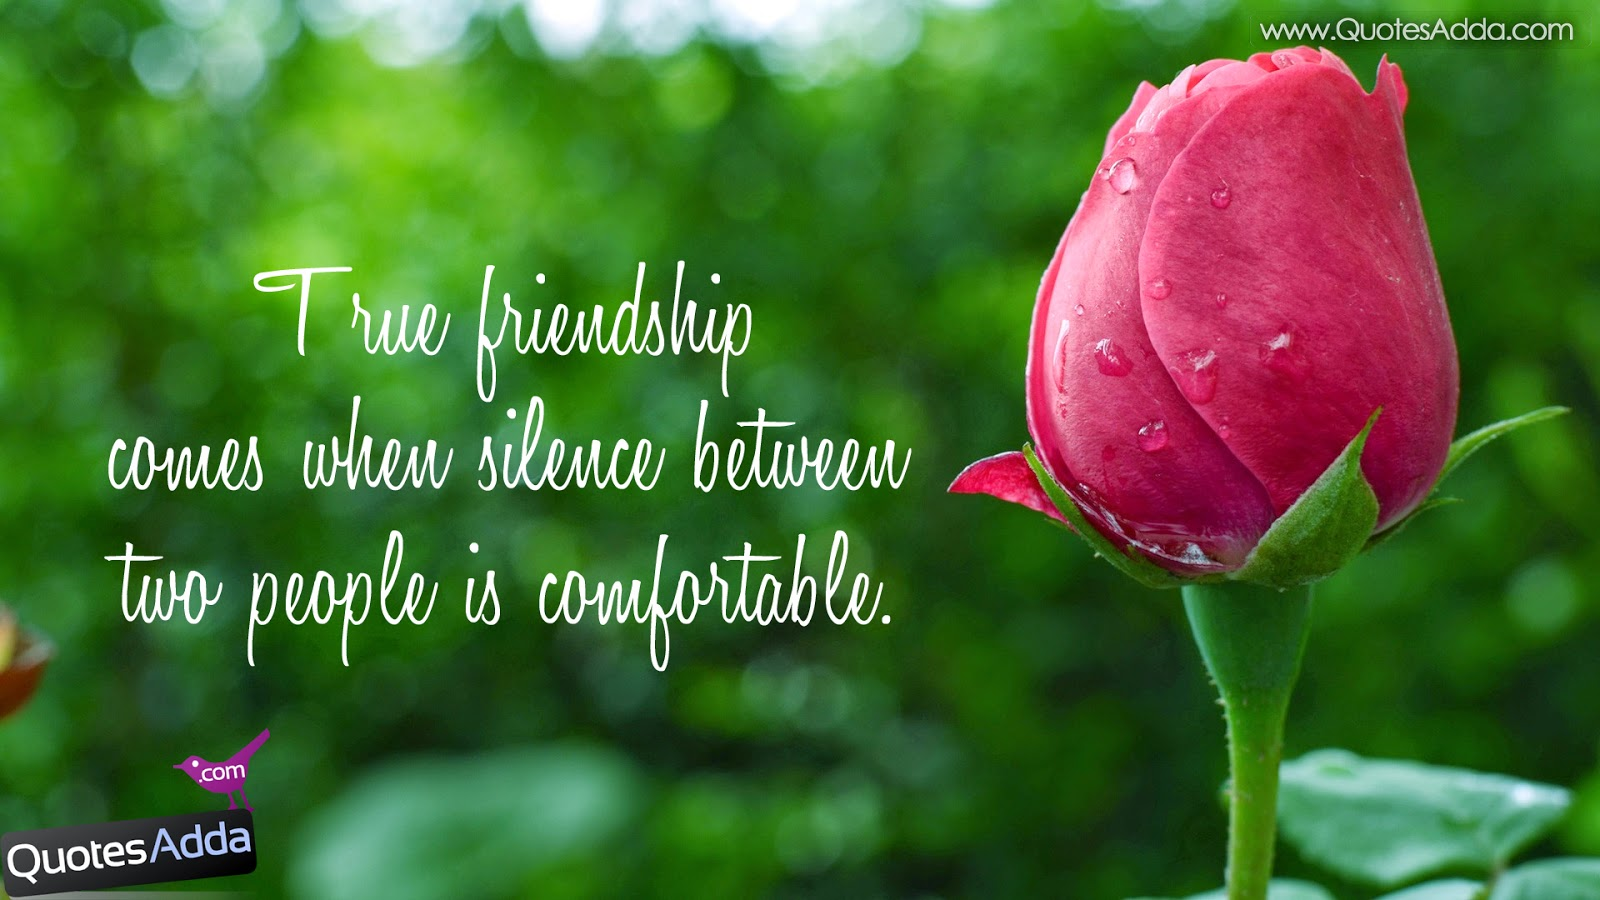 Love And Friendship Desktop Wallpaper : Friendship Images Wallpapers (44 Wallpapers) Adorable Wallpapers